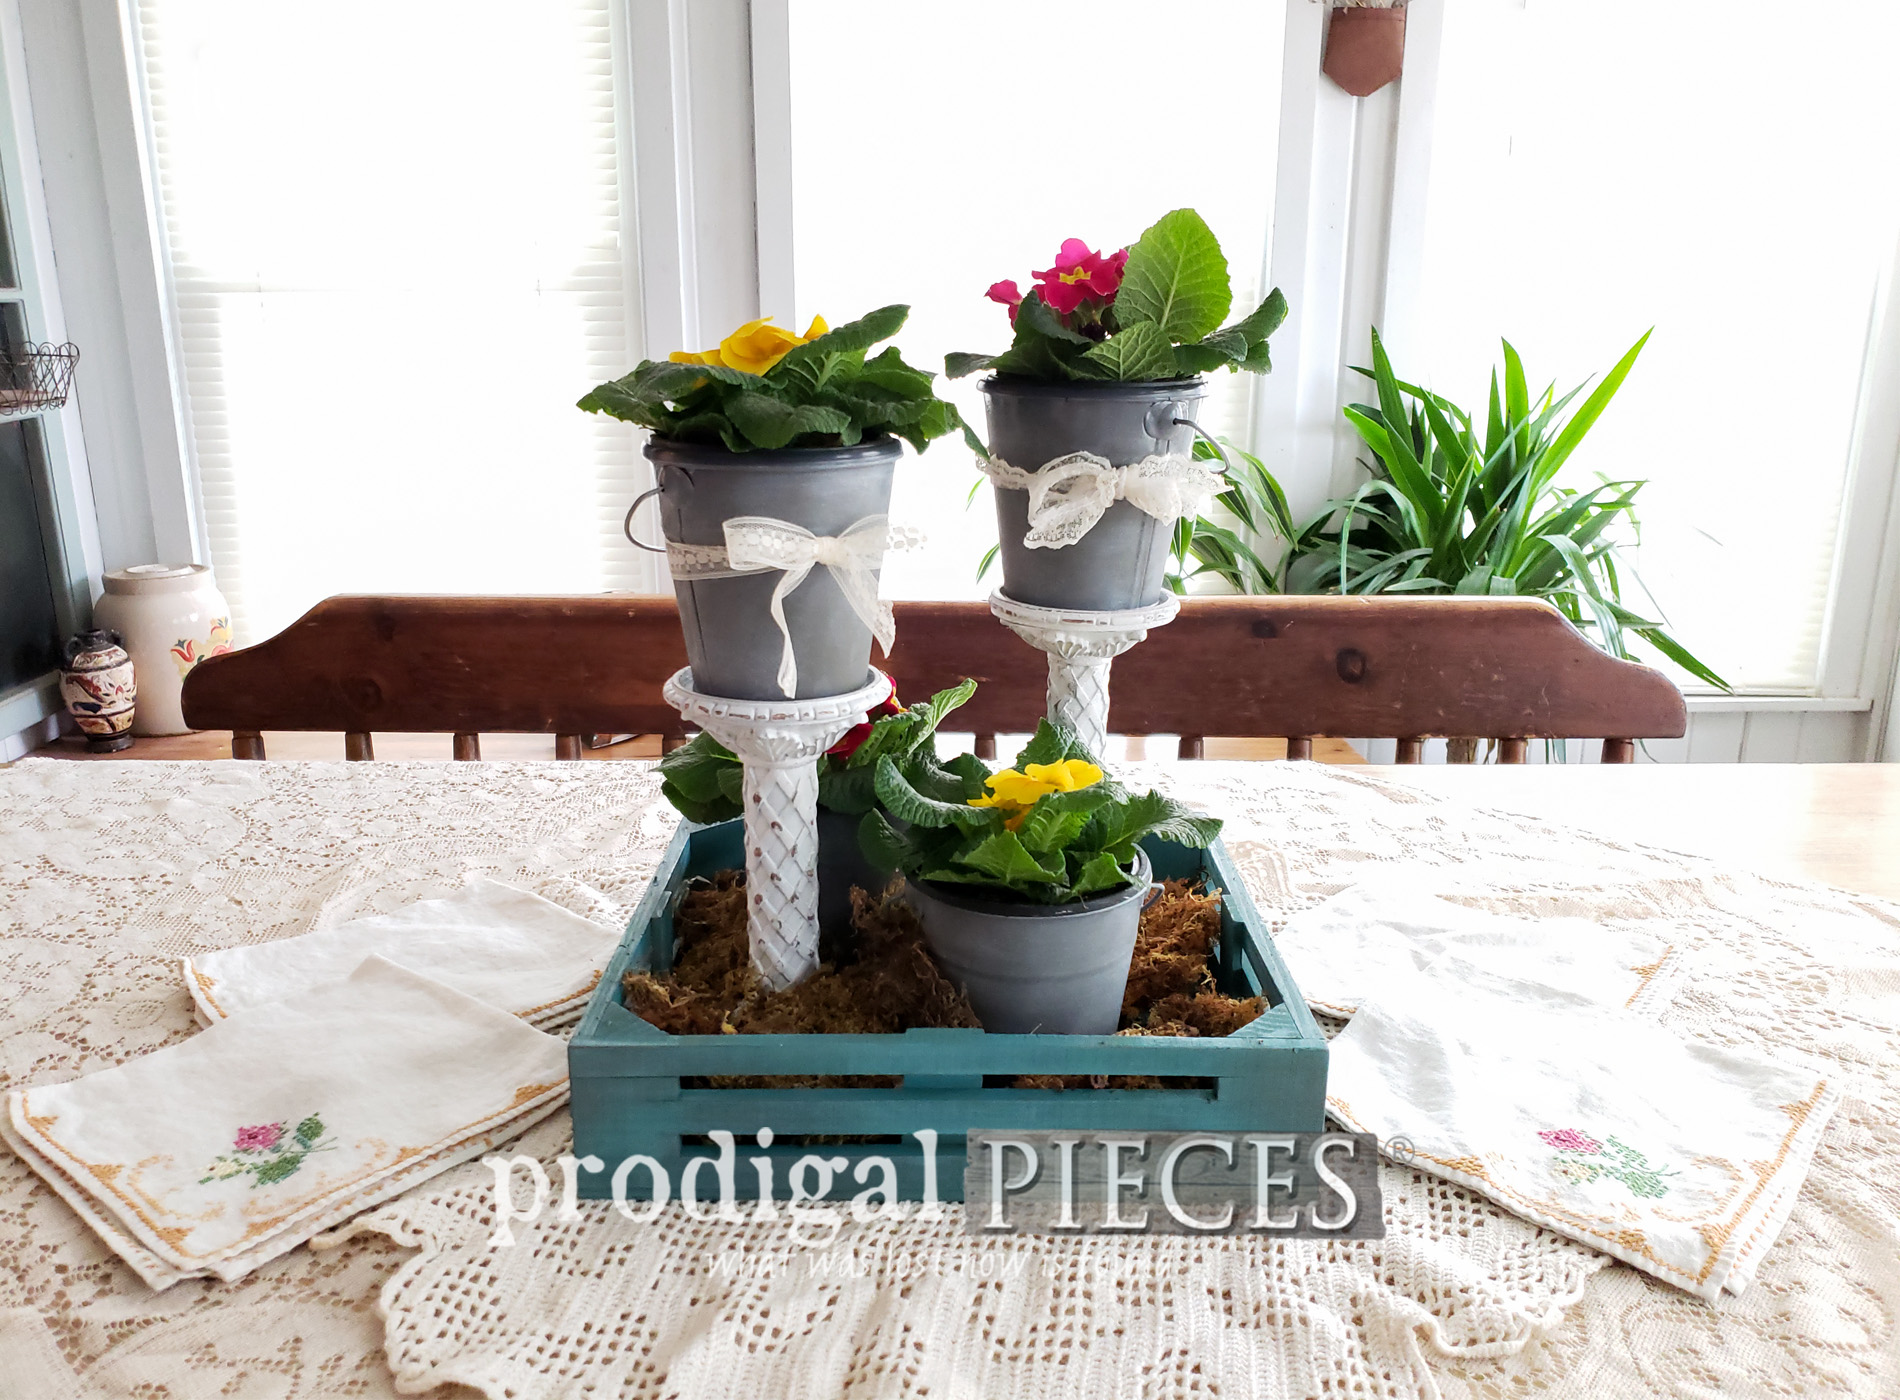 Featured DIY Spring Centerpiece using Thrifted Finds and this DIY video tutorial by Larissa of Prodigal Pieces | Head to prodigalpieces.com #prodigalpieces #diy #videos #farmhouse #home #homedecor #shopping #homedecorideas